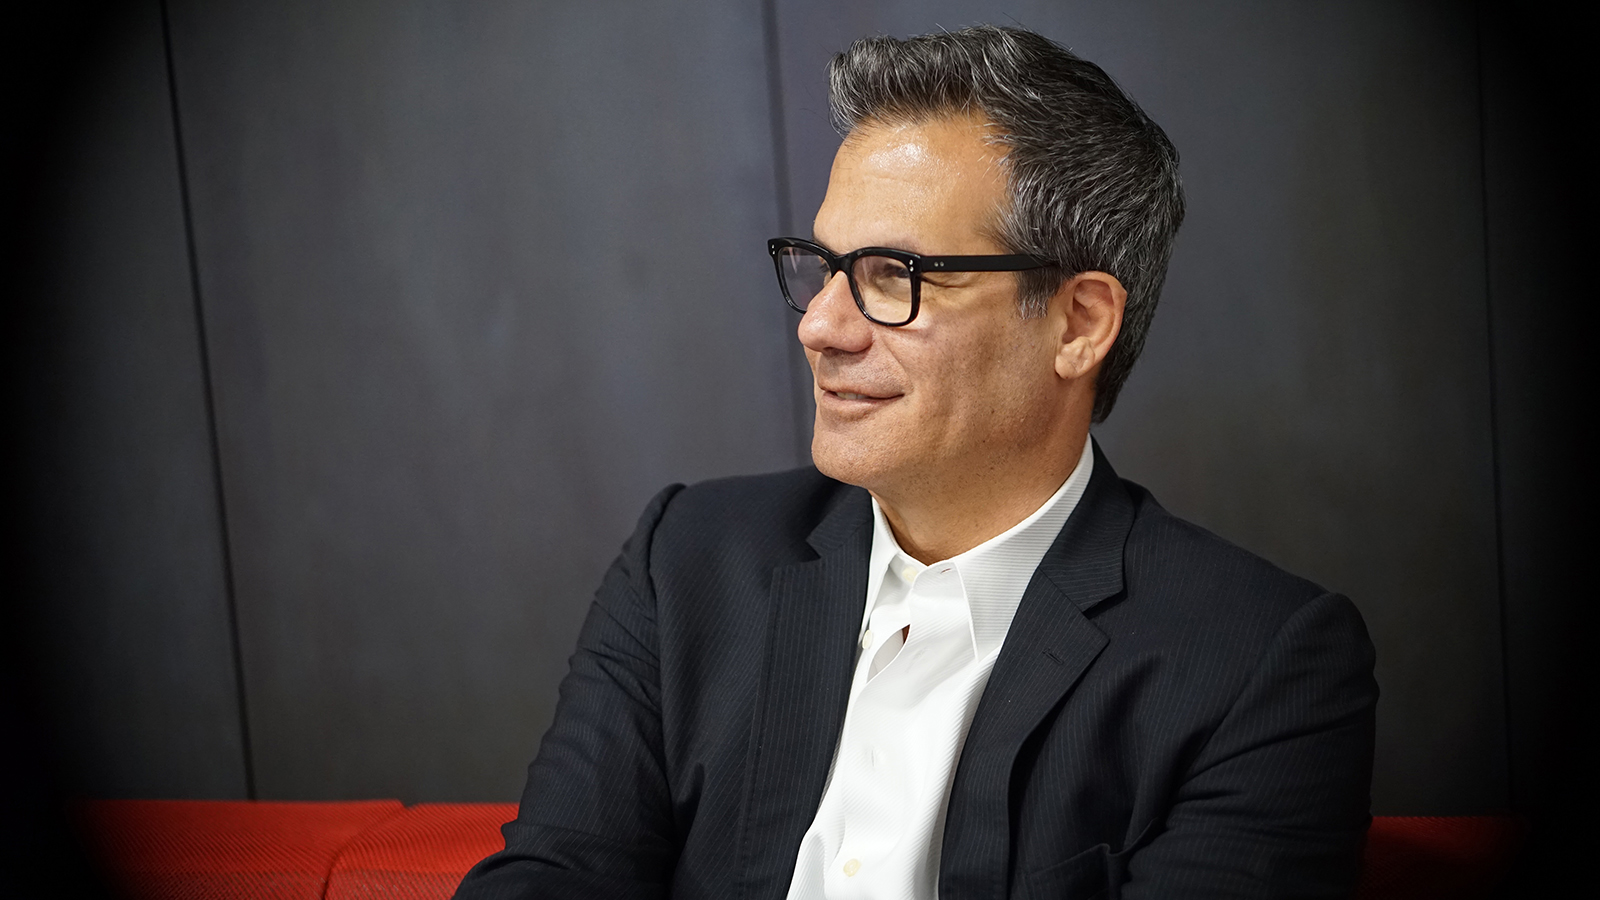 Richard Florida Photo by Roshan Nebhrajani.jpg